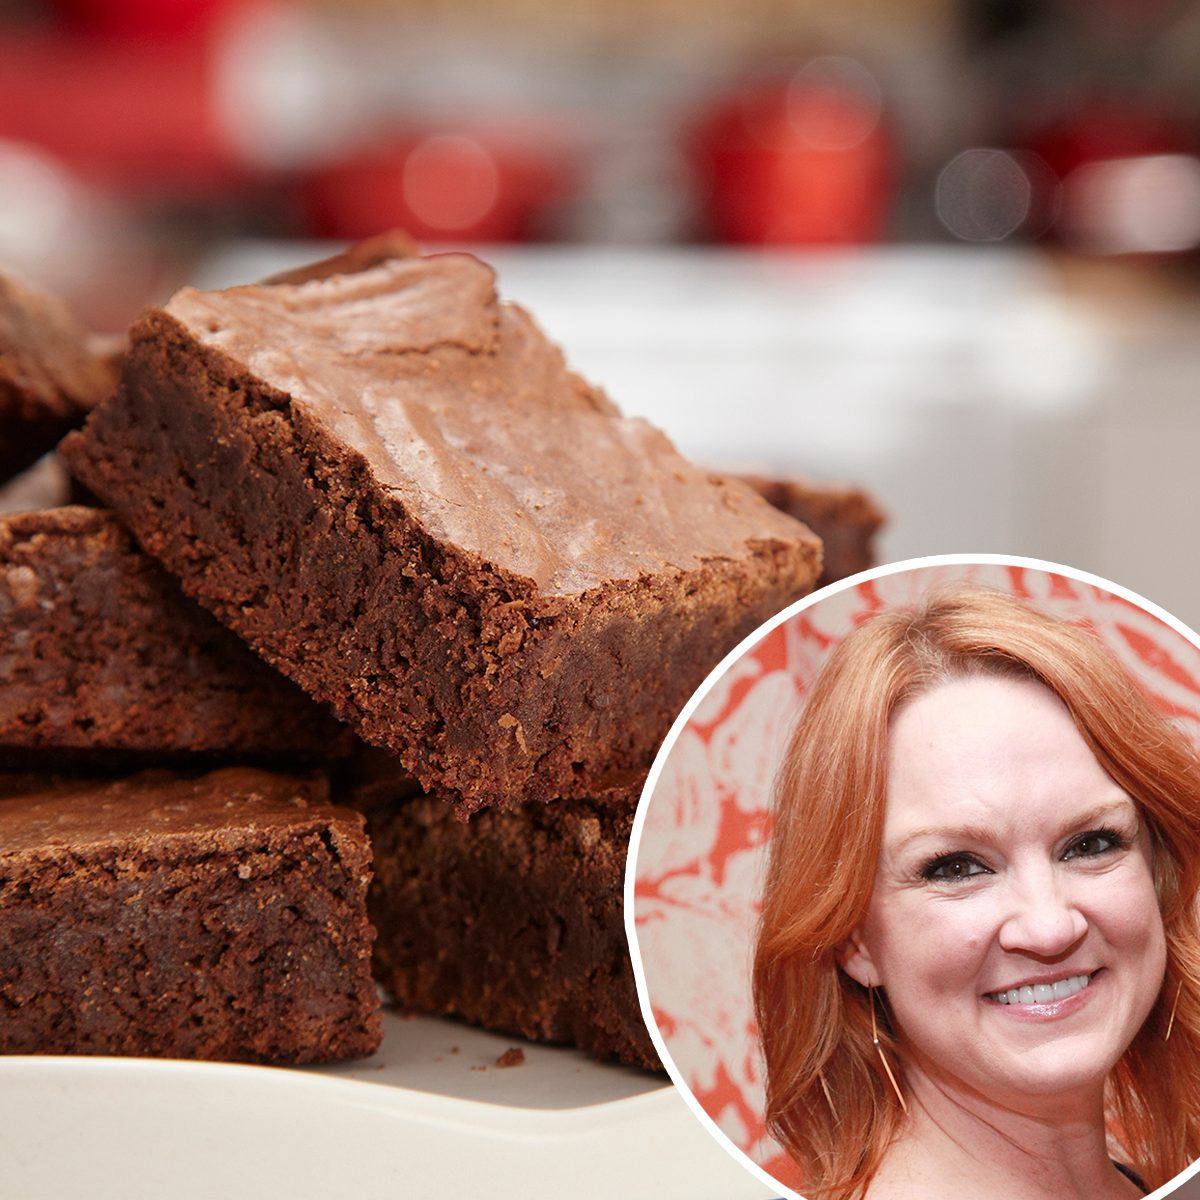 ree drummond A batch of chocolate brownies on a plate